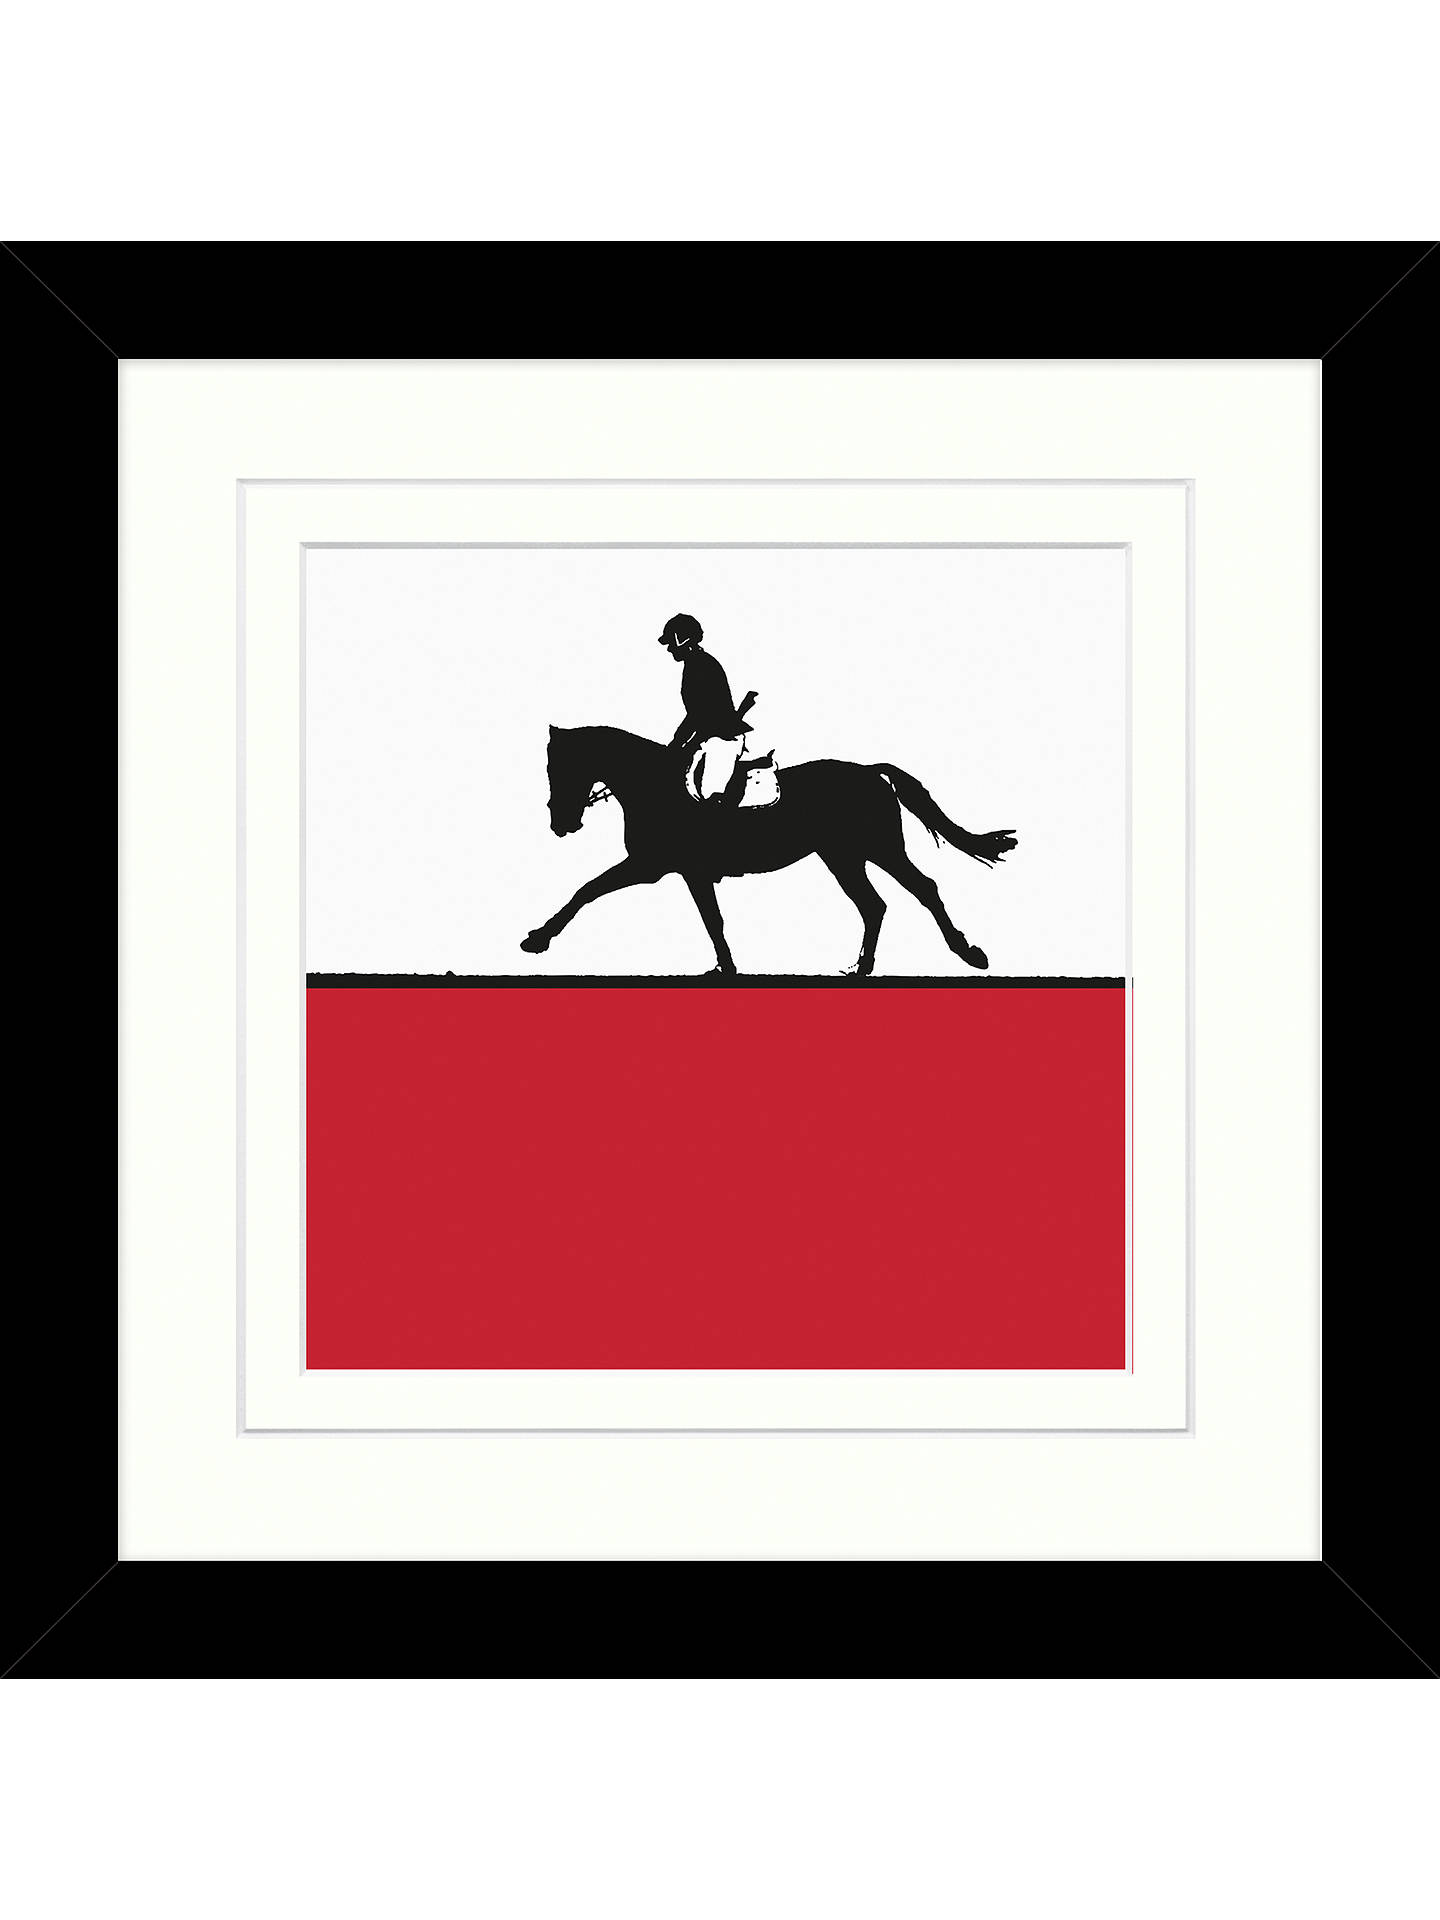 Jacky Al-Samarraie - Horse Riding Framed Print, 34 x 34cm at John ...